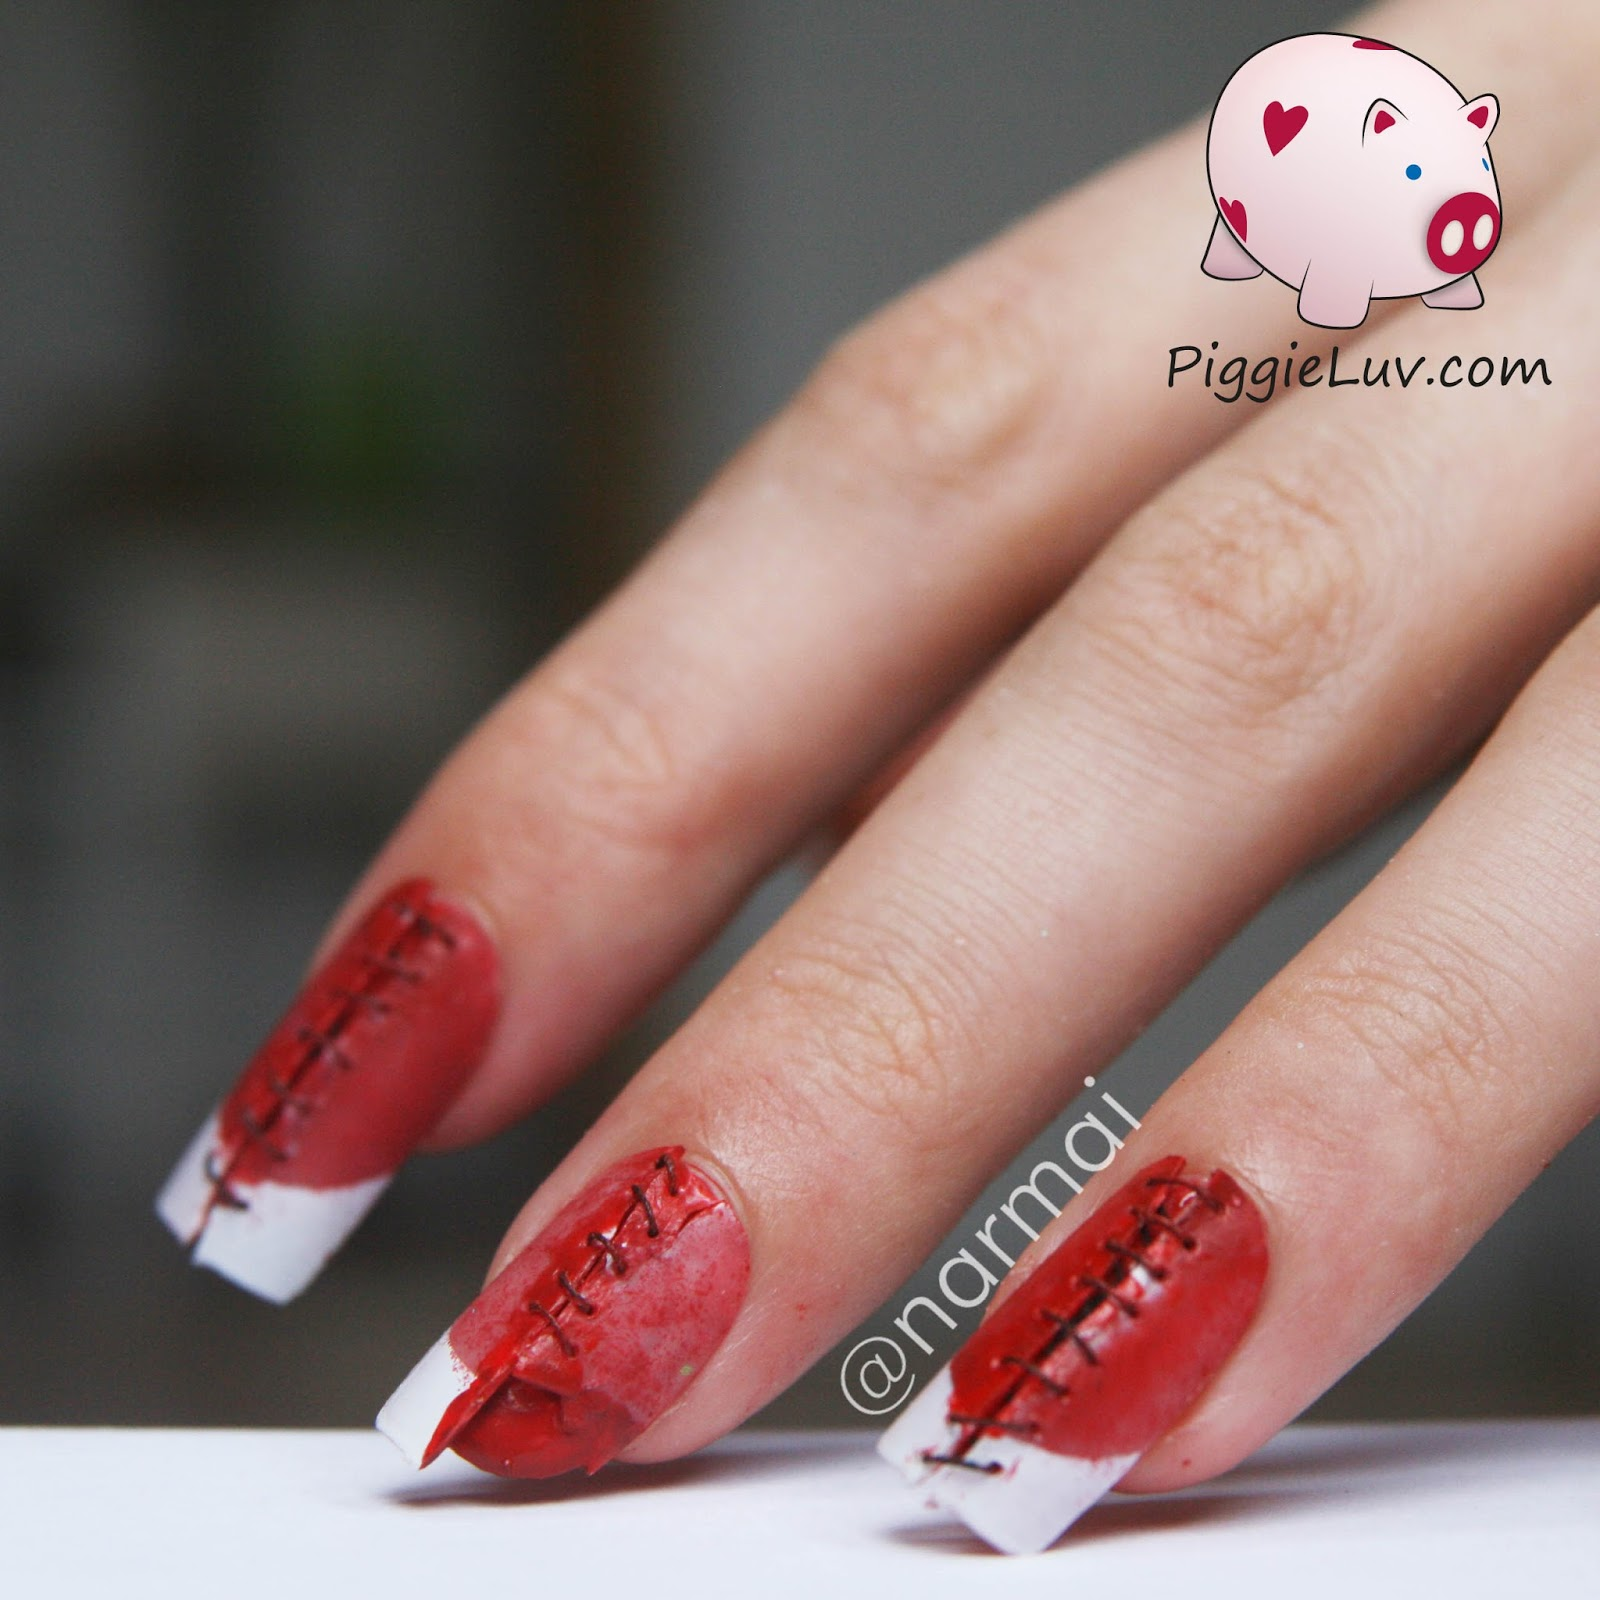 PiggieLuv: Bloody stitches nail art for Halloween